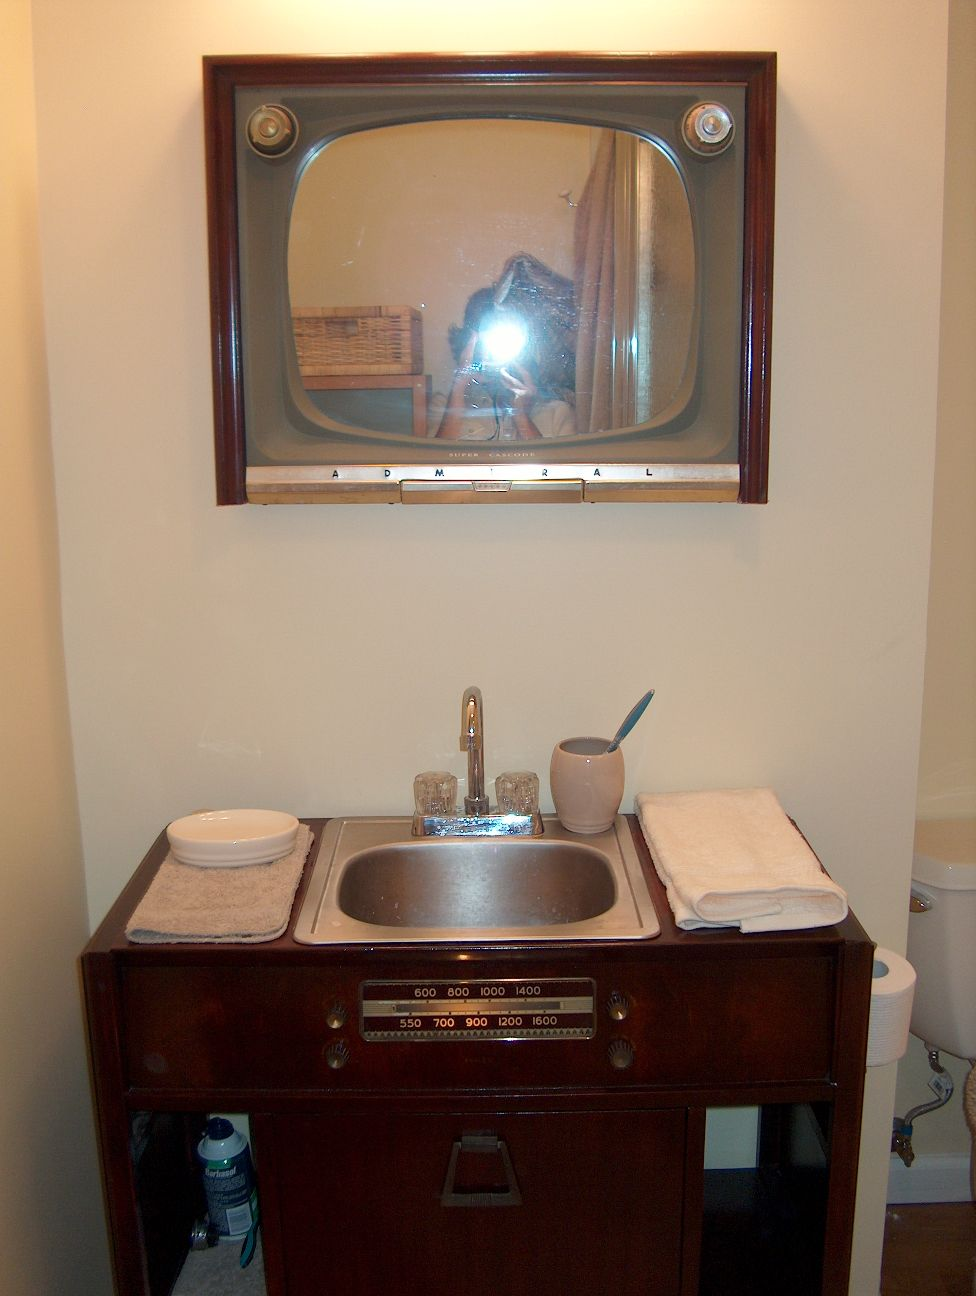 Coolest Bathroom Ever The Coolest Vanity Setup Evervintage Radio And Television